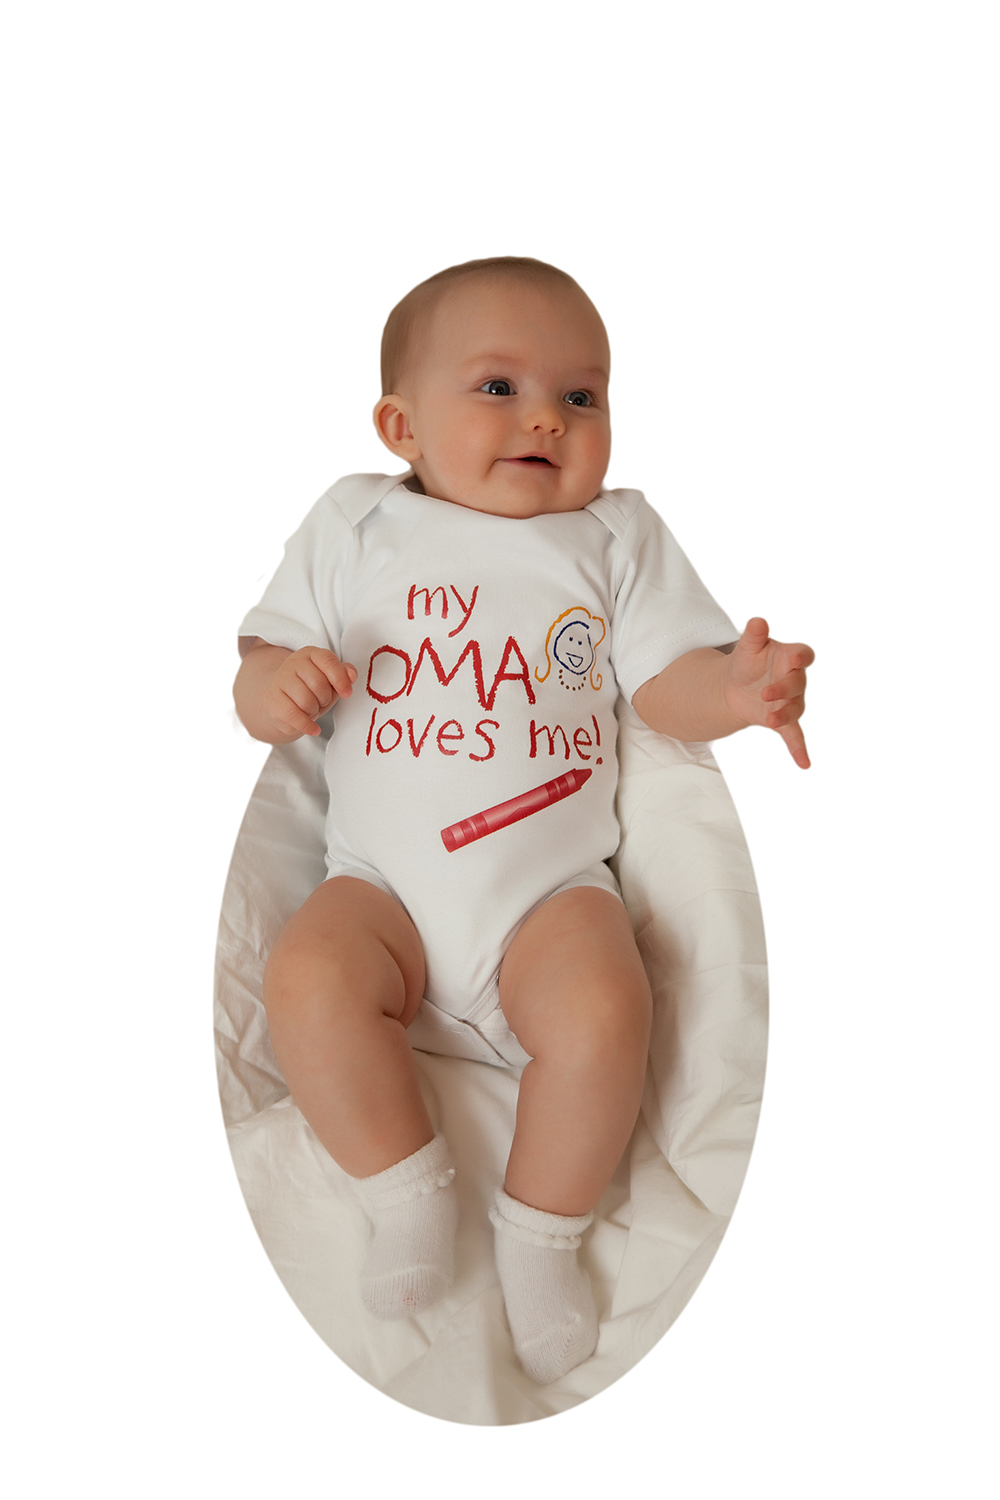 Baby Onesie 'My Oma Loves Me' 6 months - one left